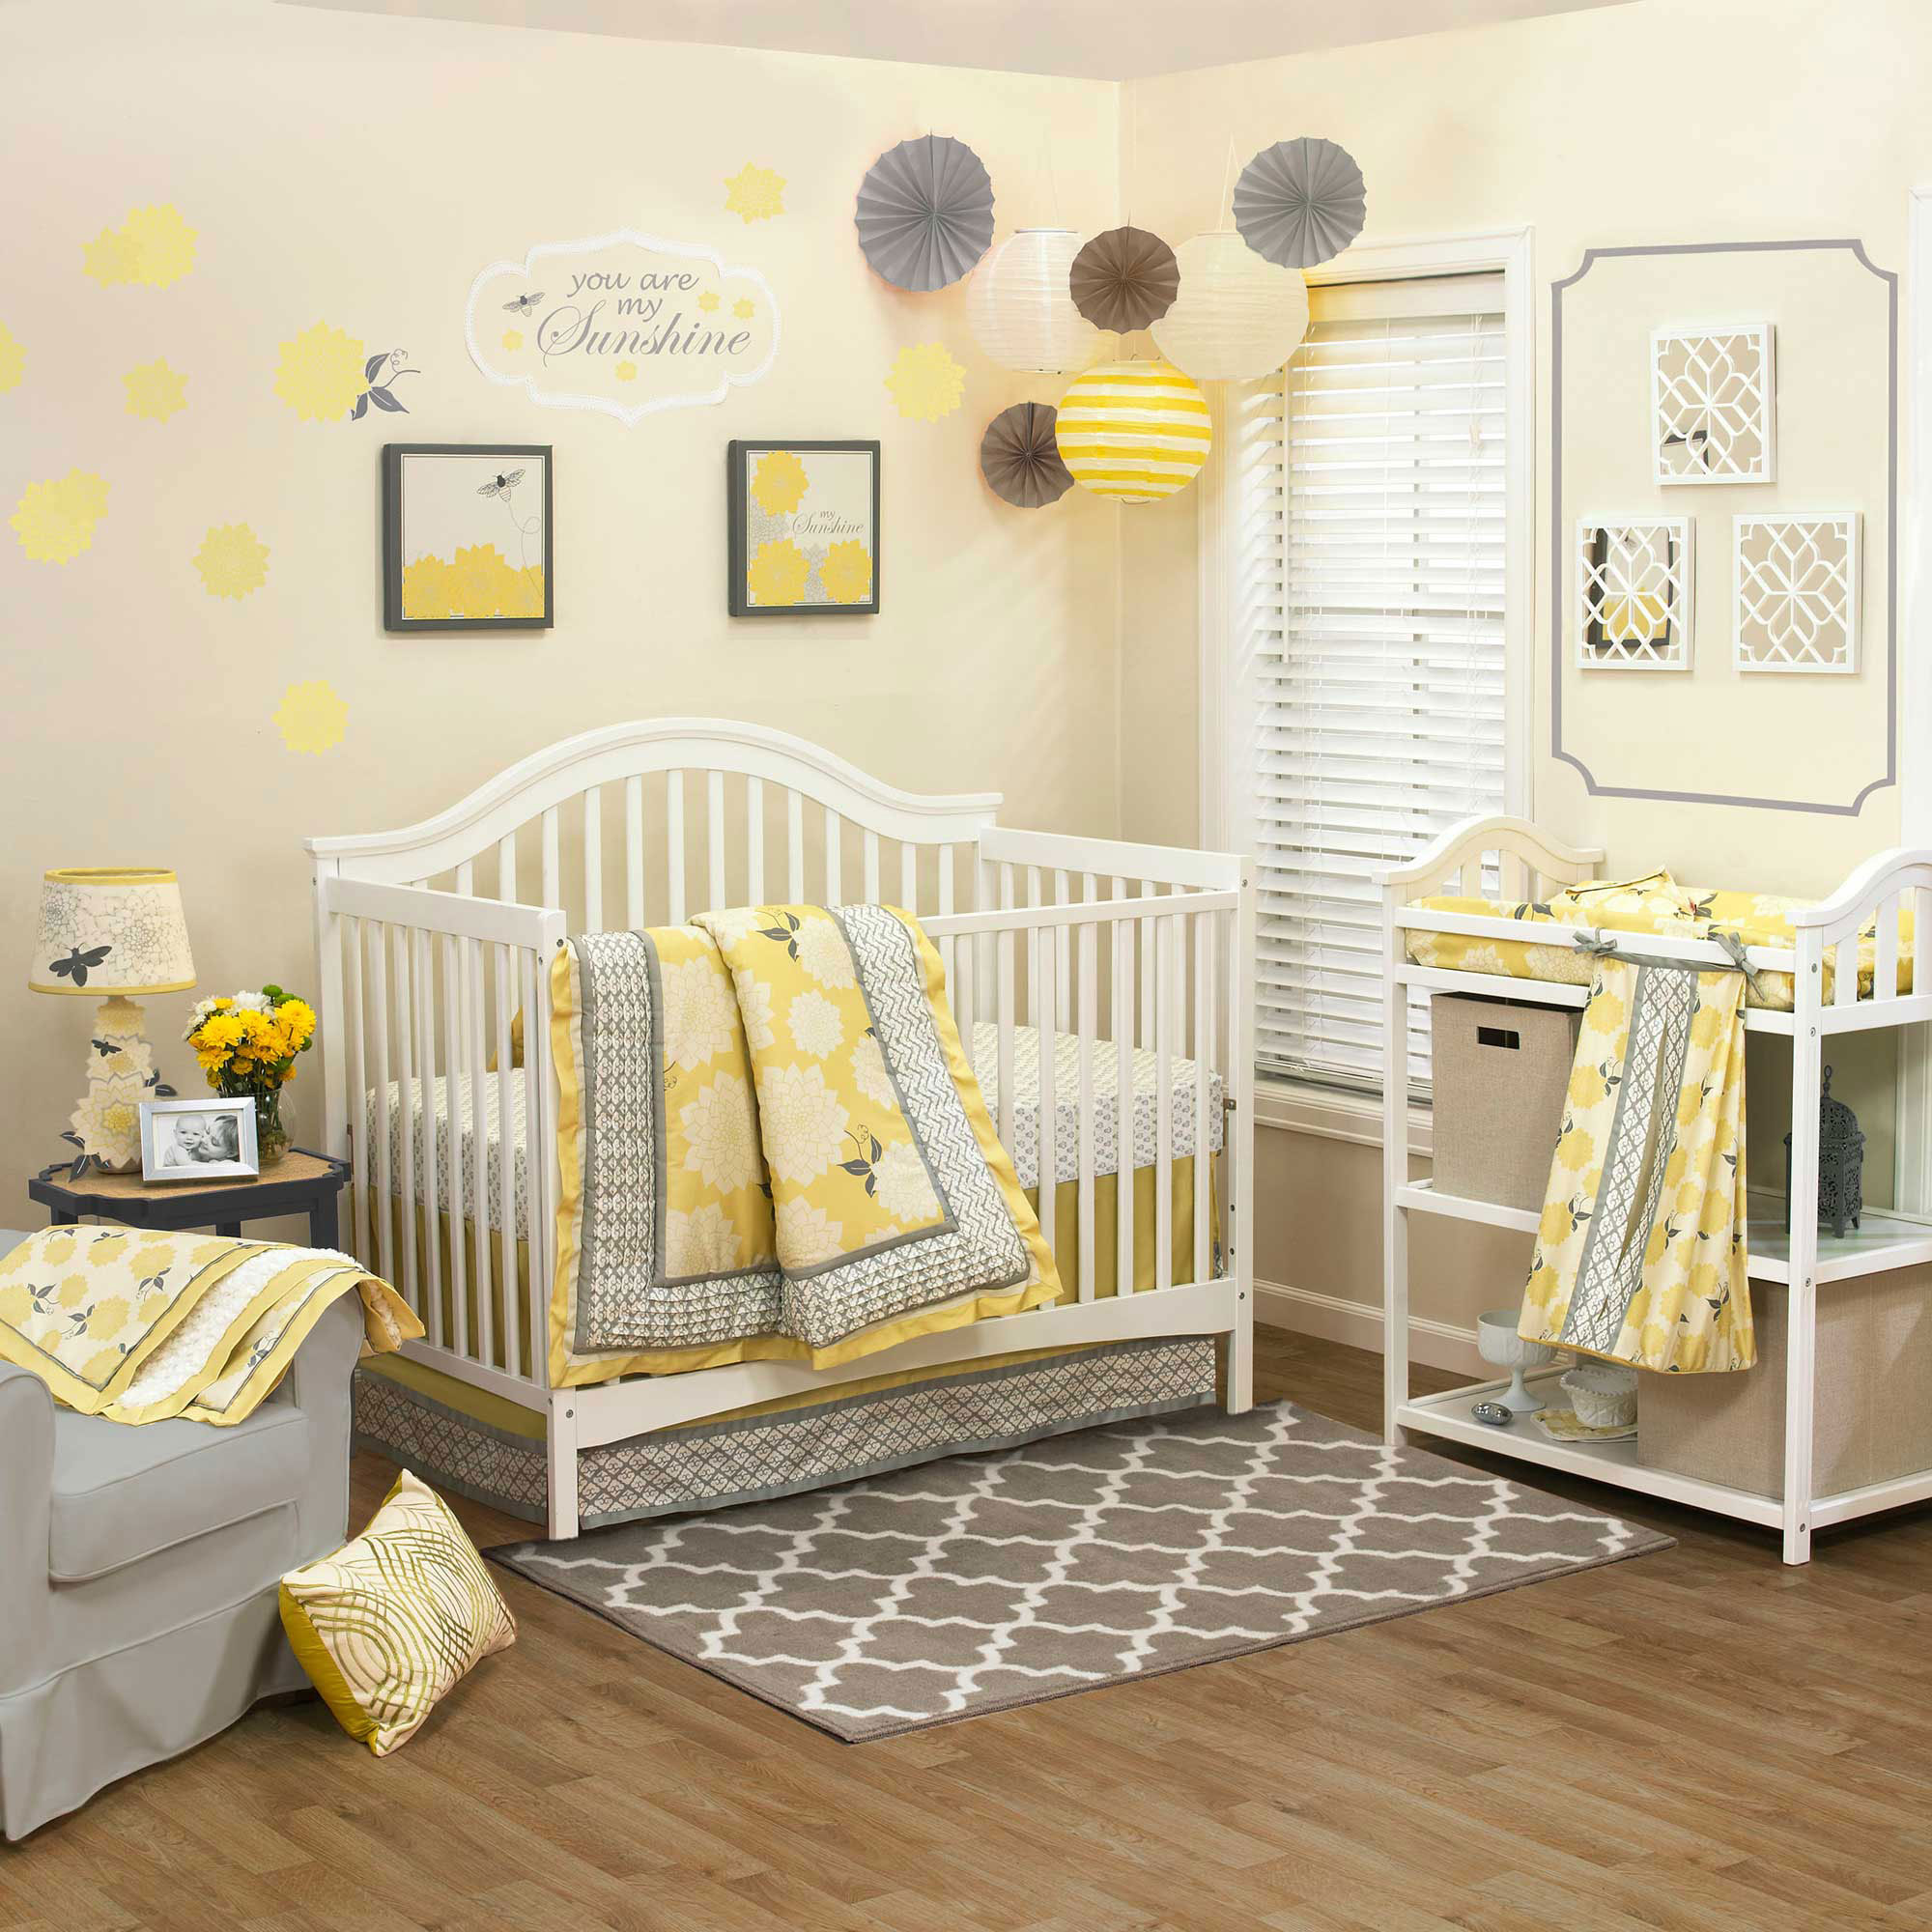 Baby Girl Nursery Ideas: 10 Pretty Examples - Decorating Room on Decoration For Girls Room  id=21296